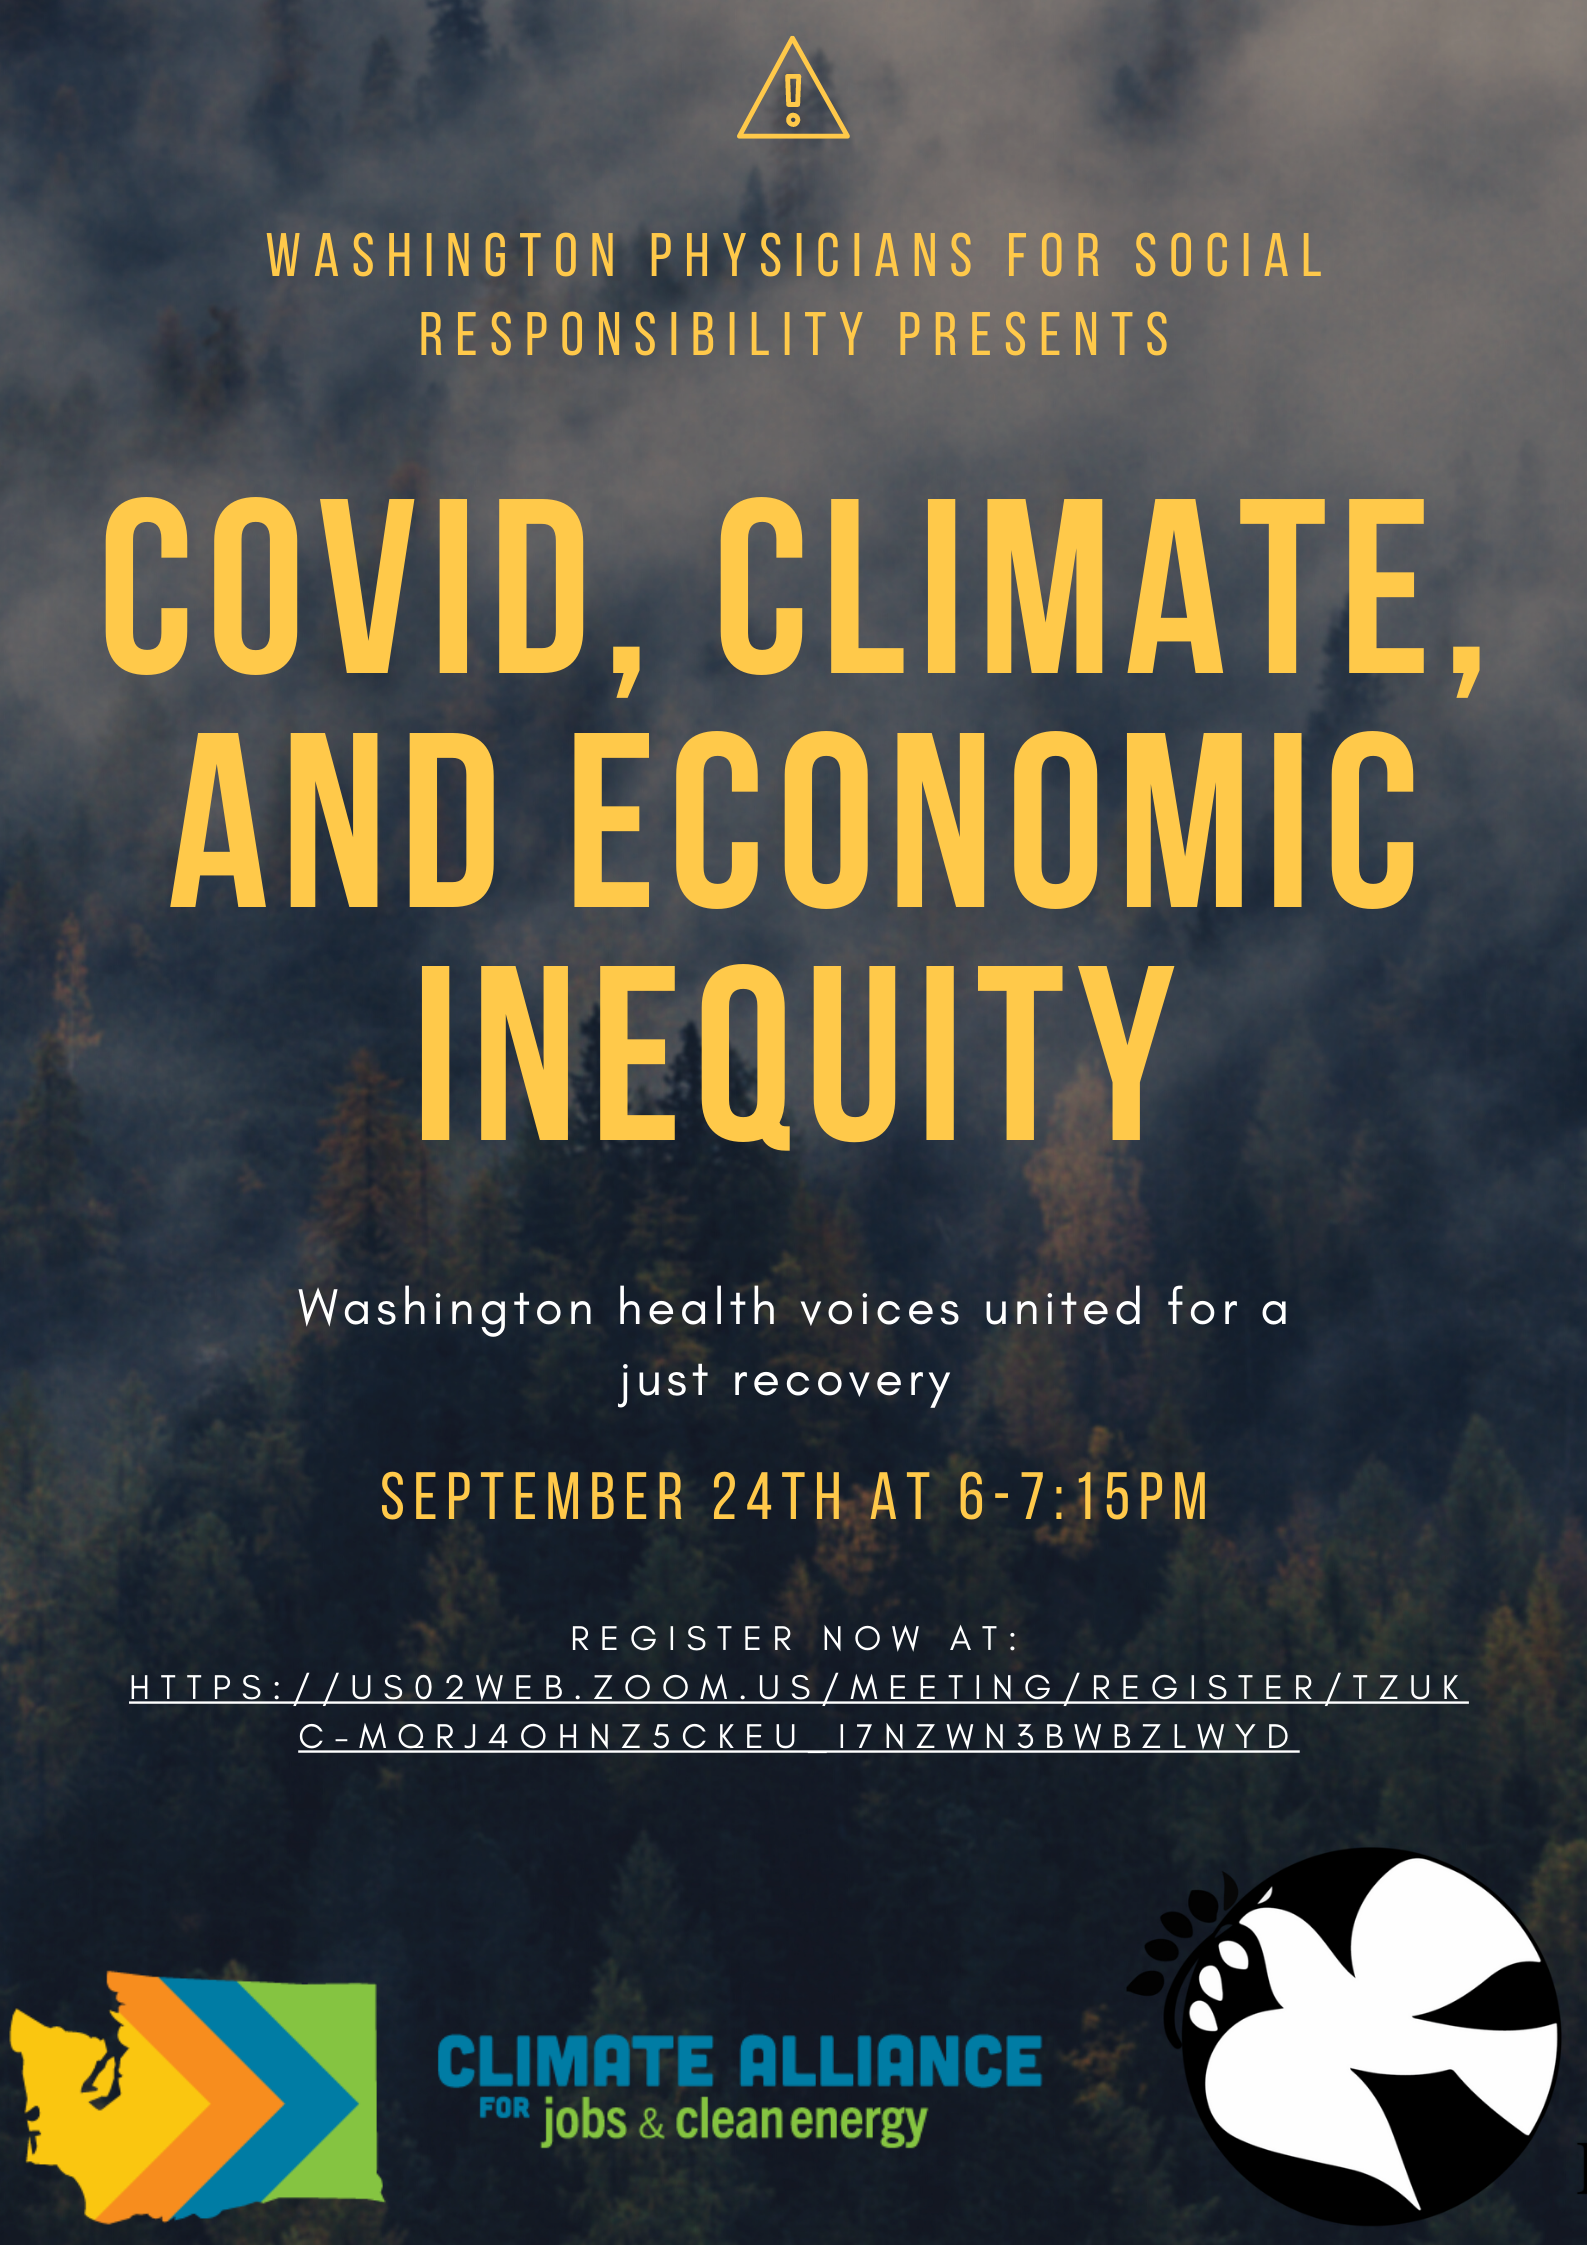 WA_PSR_9-24-20_COVID__Climate__and_Economic_Inequity_event_graphic.png